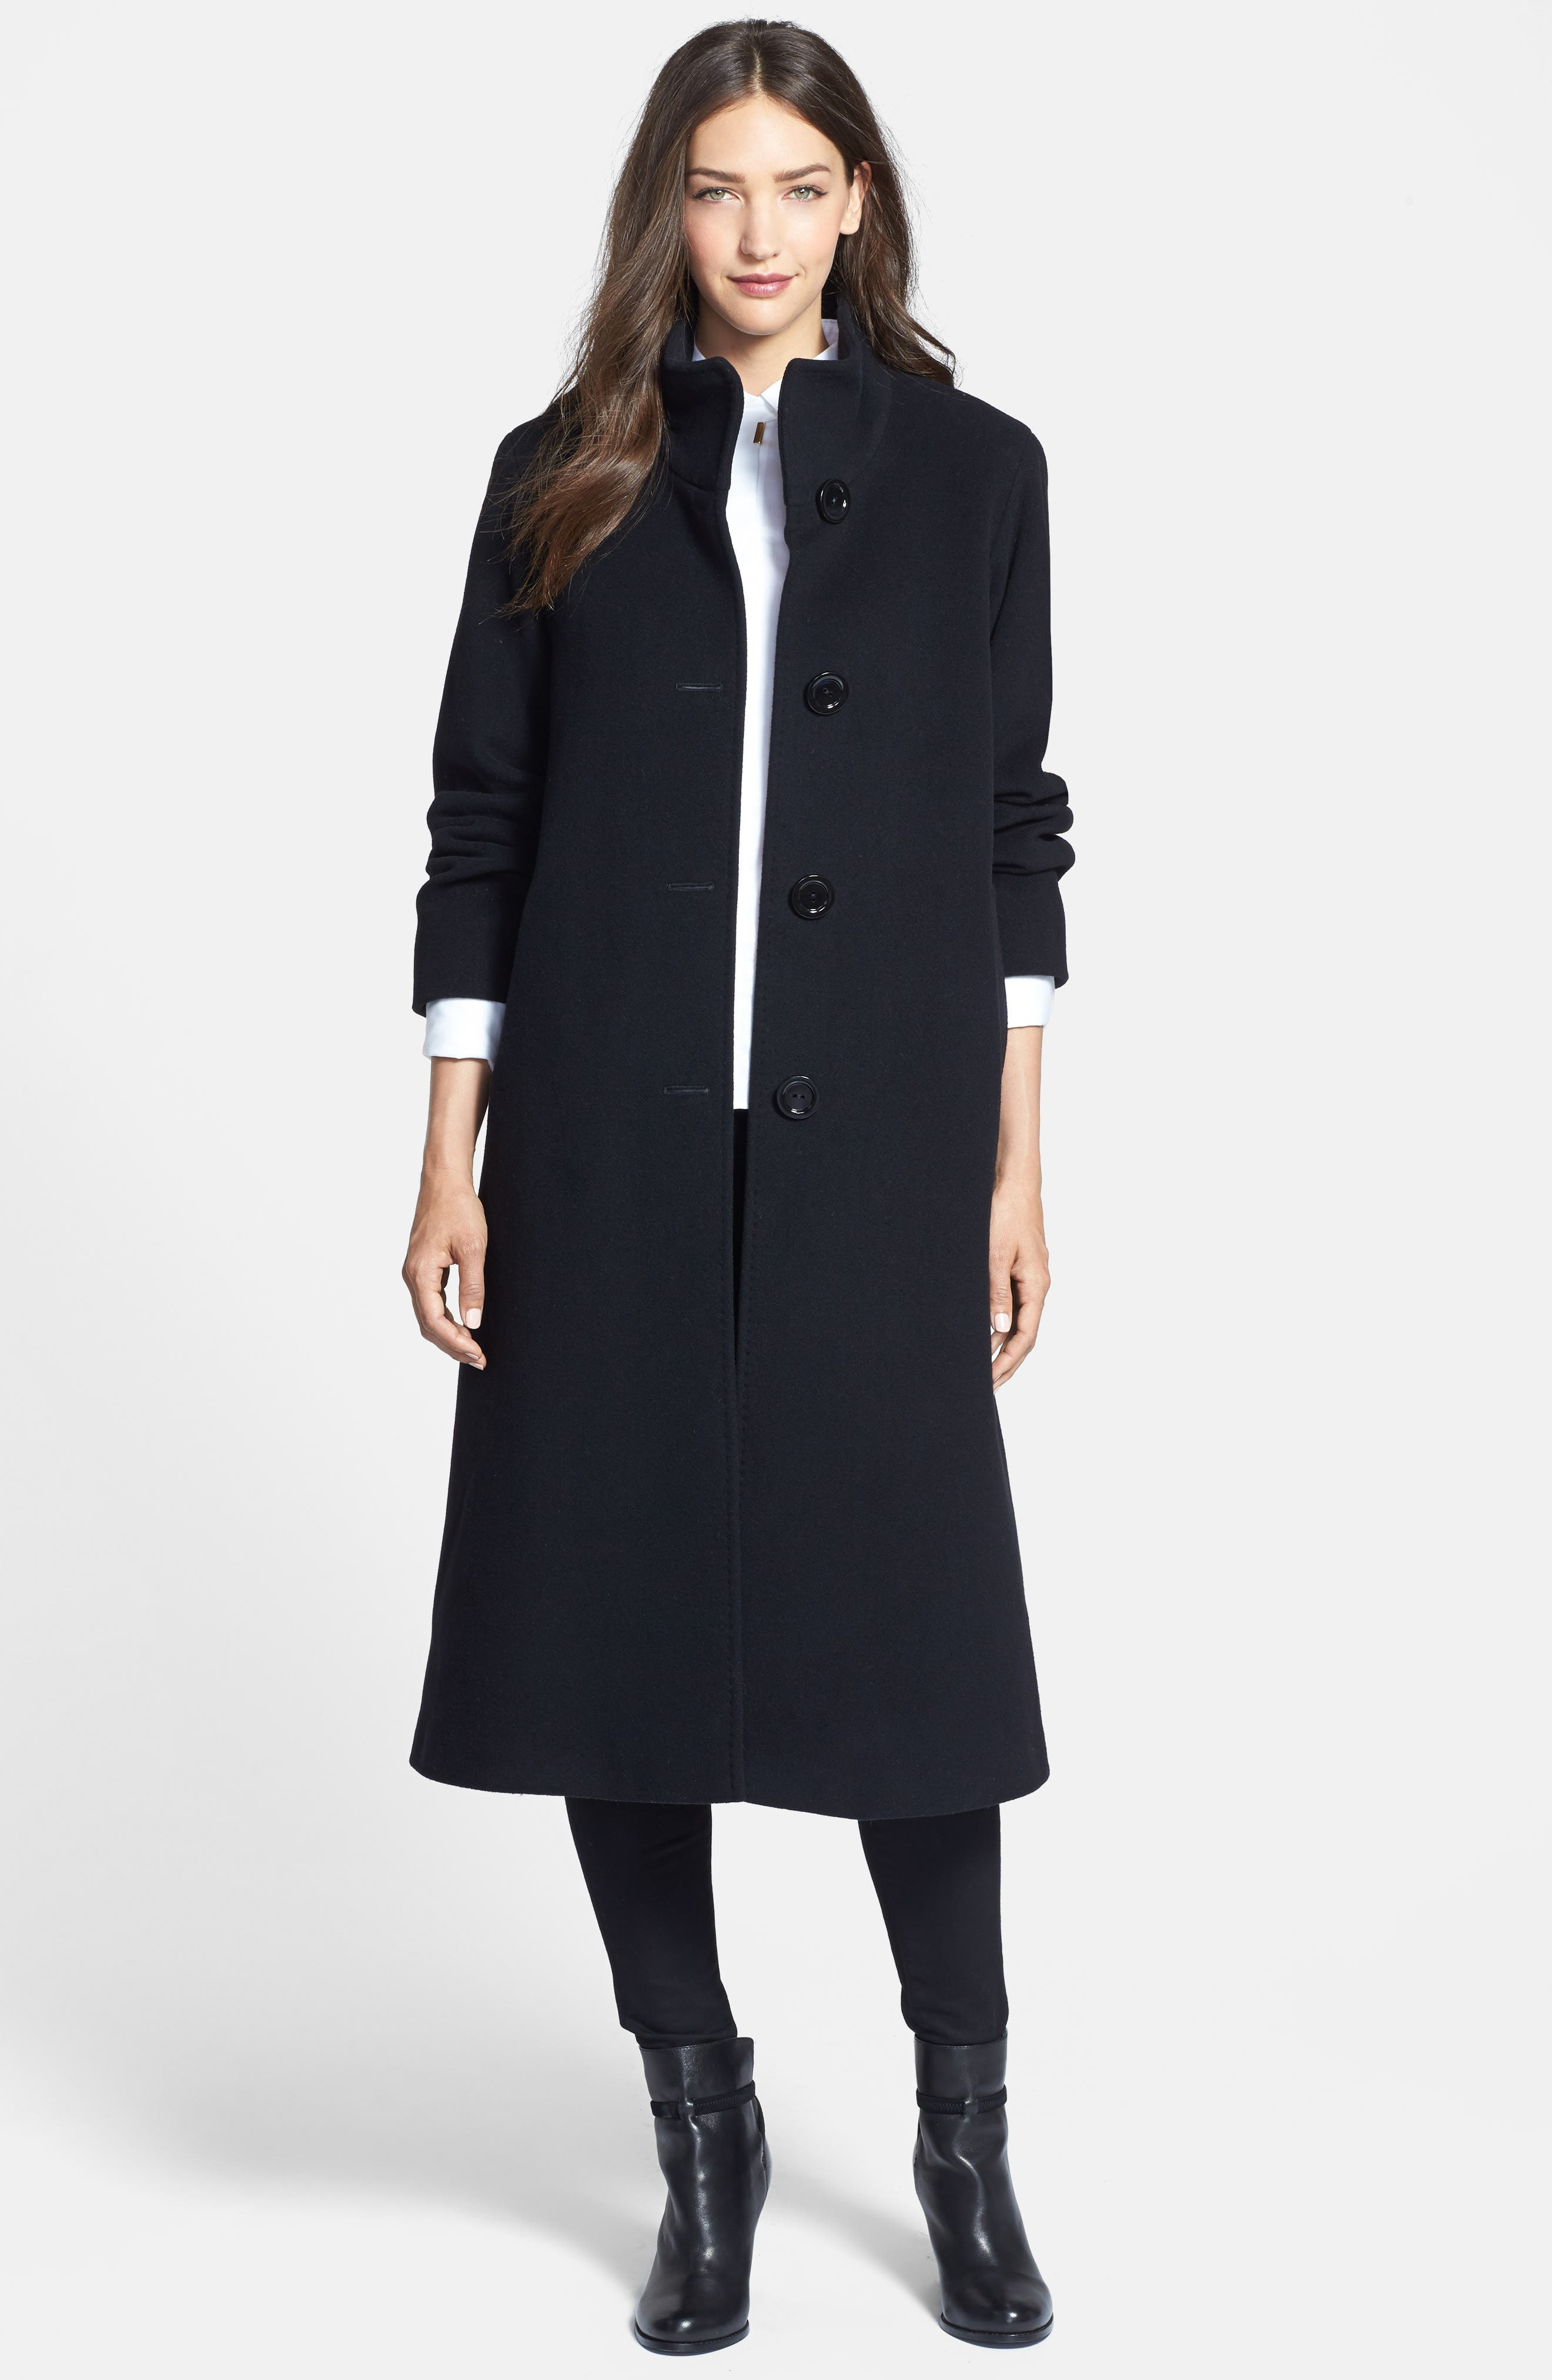 Cinzia Rocca DUE Stand Collar Side Slit Long Coat,                             Main thumbnail 1, color,                             001